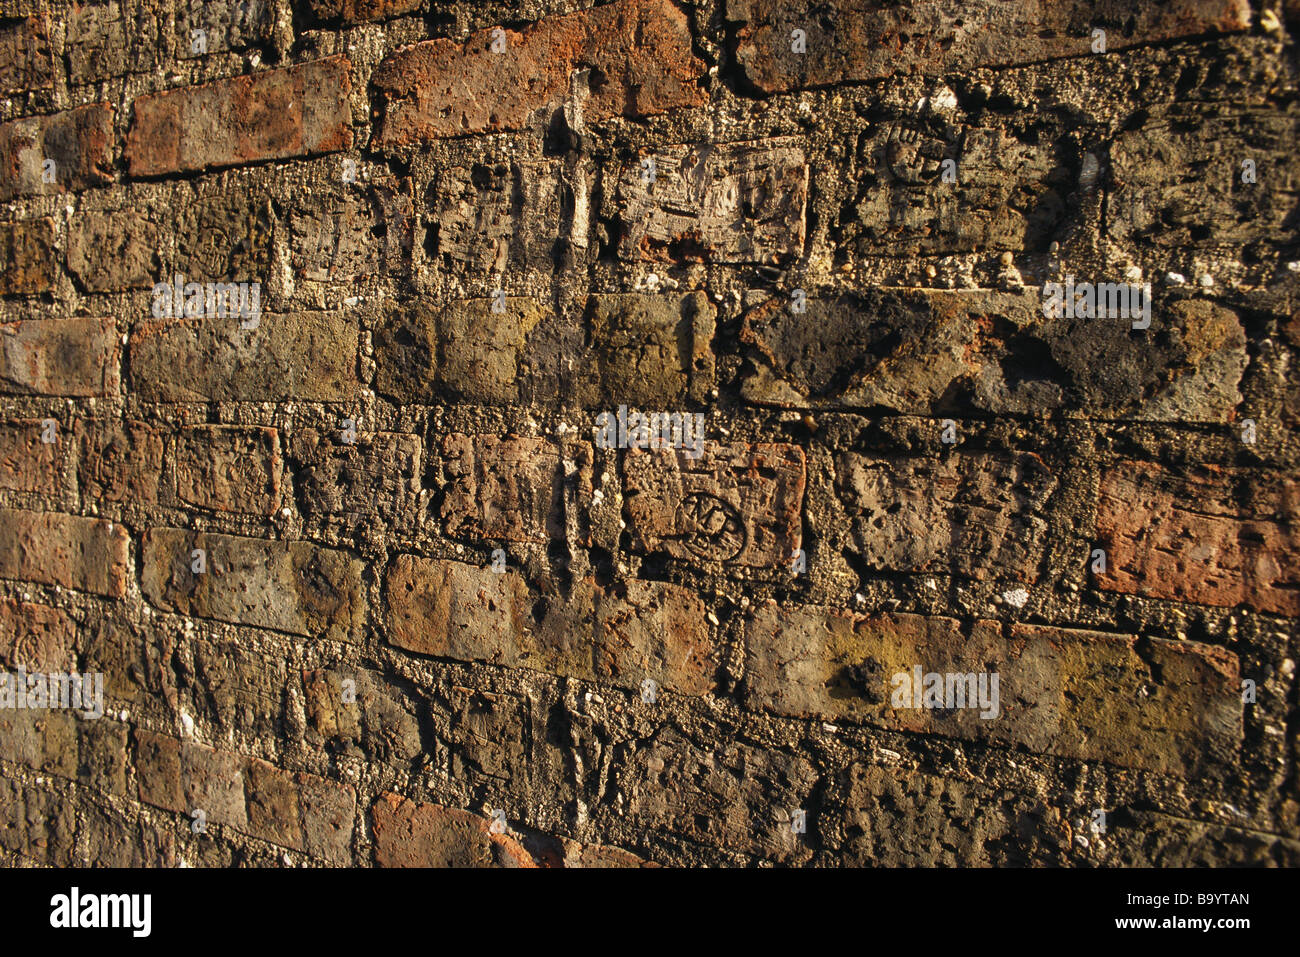 Mur de brique, close-up Photo Stock